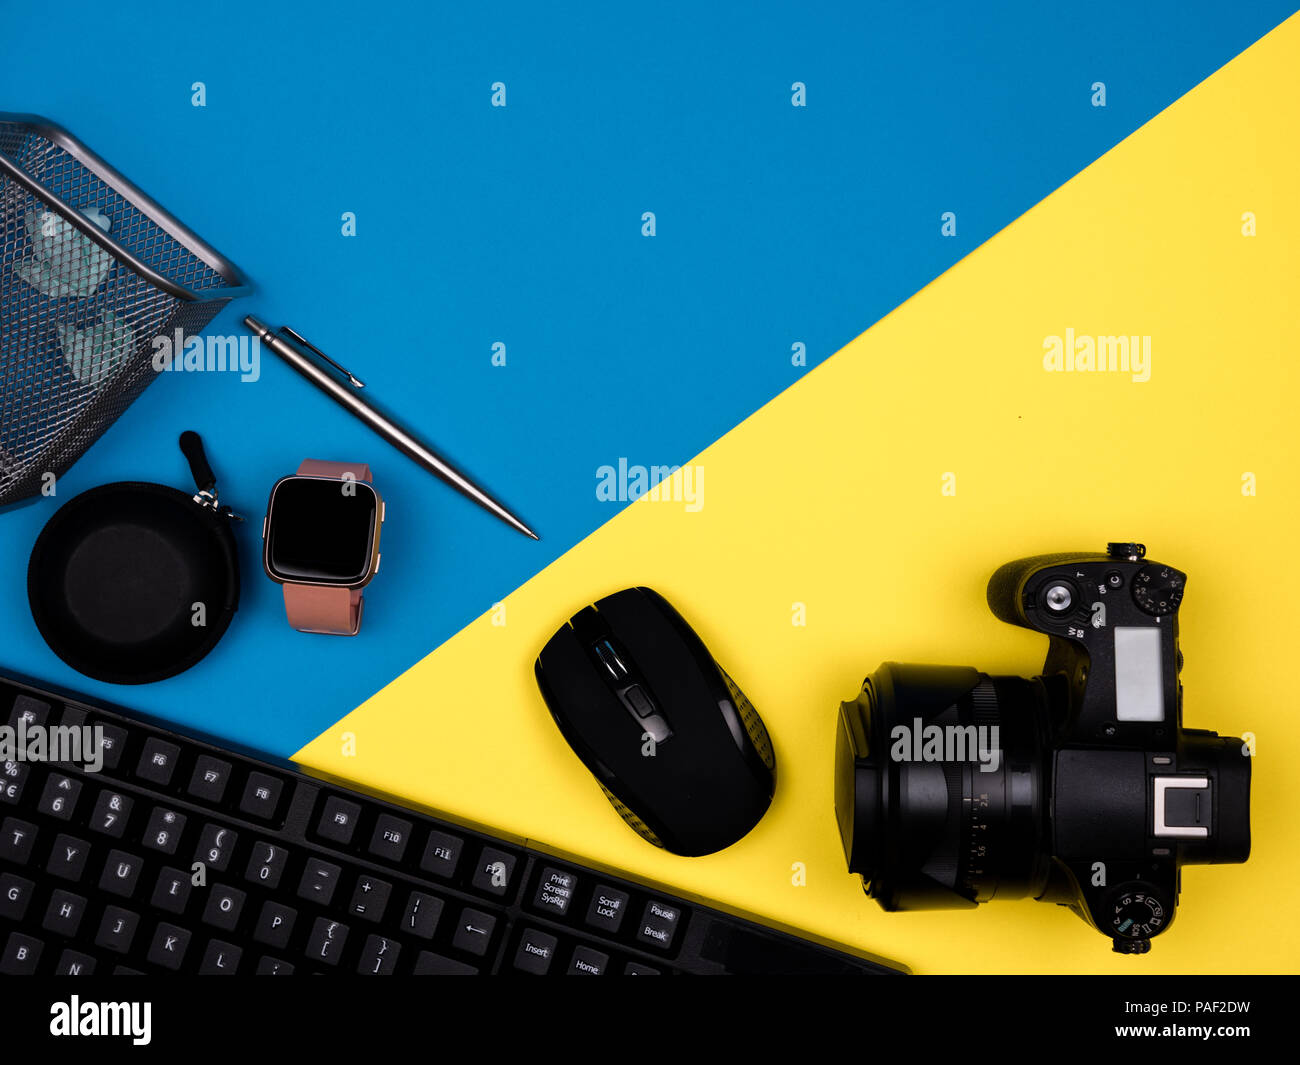 Keyboard, camera, mouse, watch, pen, jammed paper - Stock Image